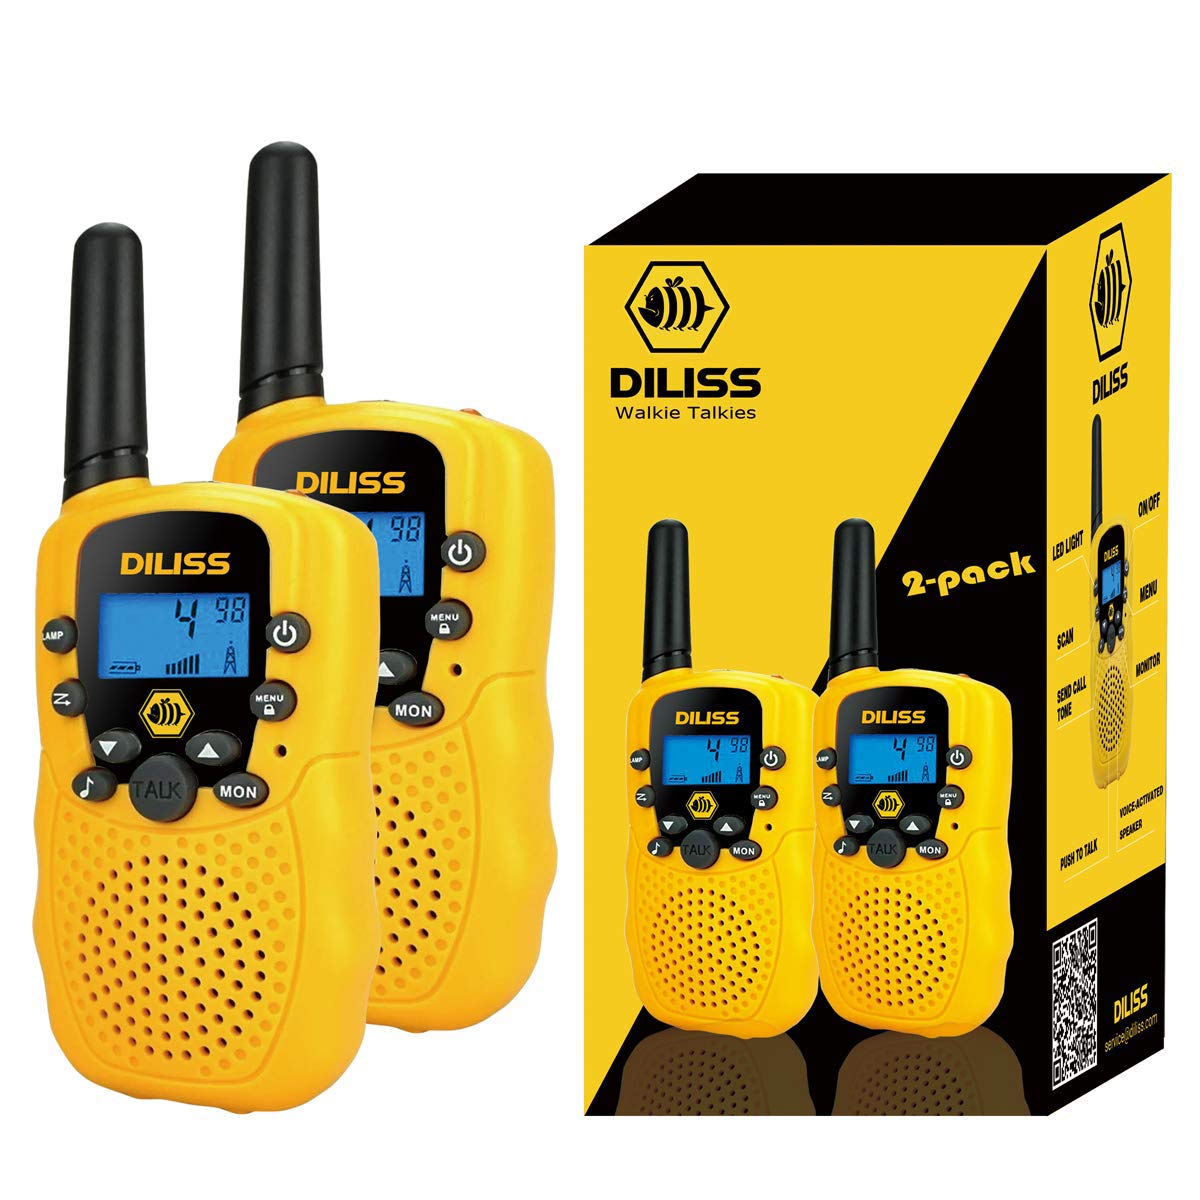 Walkie Talkies for Kids, 22 Channels FRS/GMRS Uhf Two Way Radios 4 Mile Handheld Mini Kids Walkie Talkies for Kids Best Gifts Kids Toys Built in Flashlight 2 Pack - Yellow by DilissToys (Image #1)